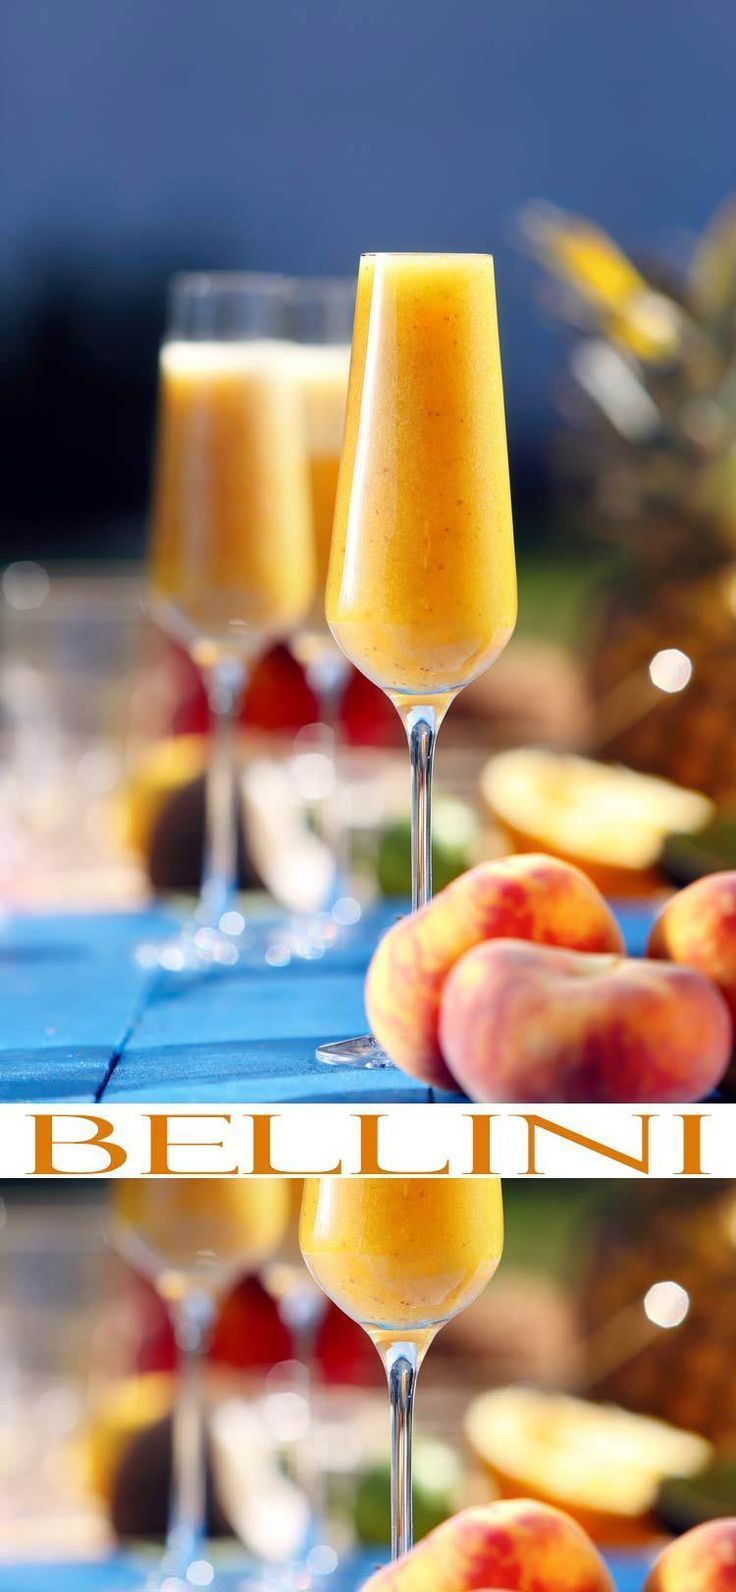 Simple Cocktail Recipes. Bellini Cocktail Recipe. This Bellini recipe is the perfect cocktail recipe for a light and fruity drink. Ideal for brunch cocktails or simple picnic fair, you'll love this easy cocktail recipe.